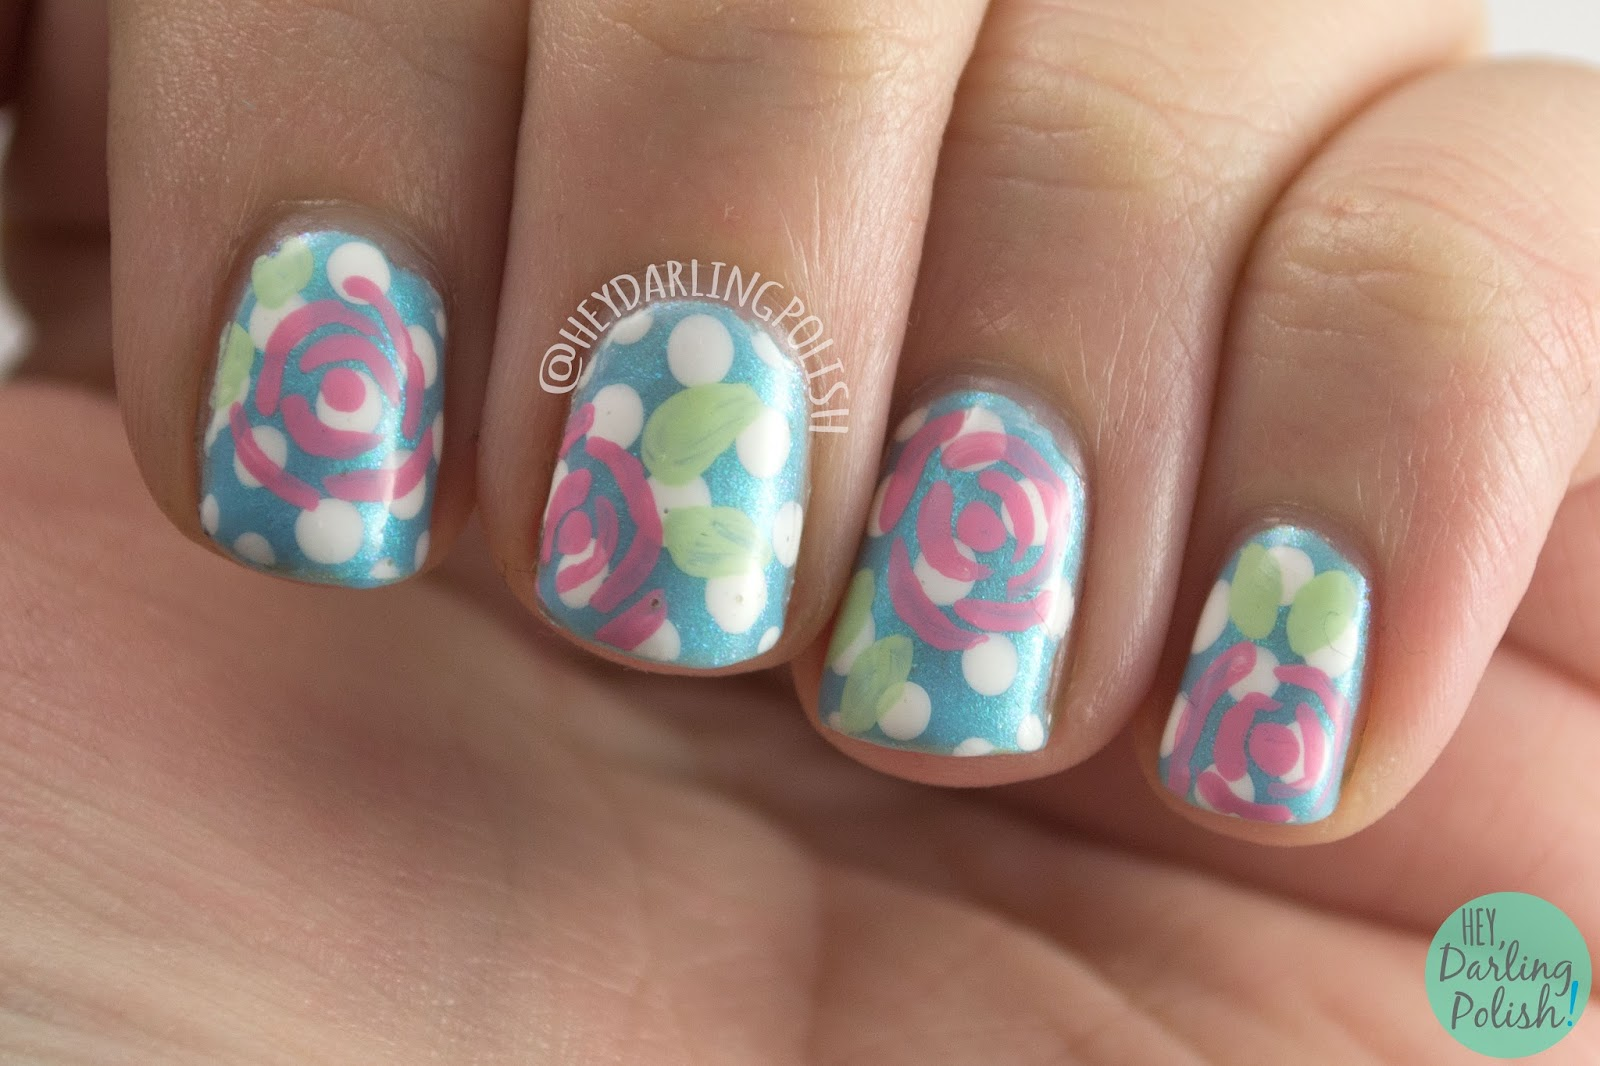 nails, nail art, nail polish, hey darling polish, roses, polka dots, blue, the nail challenge collaborative, freehand